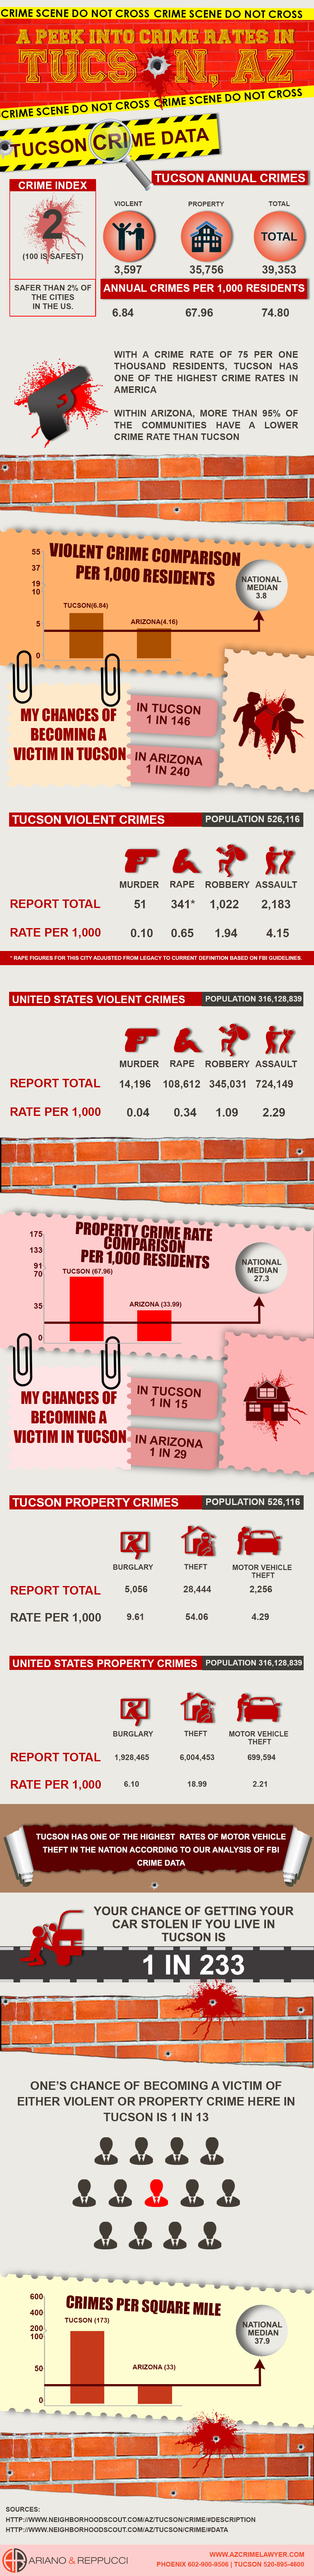 ariano & reppucci - a peek into crime rates in tucson, az(1)